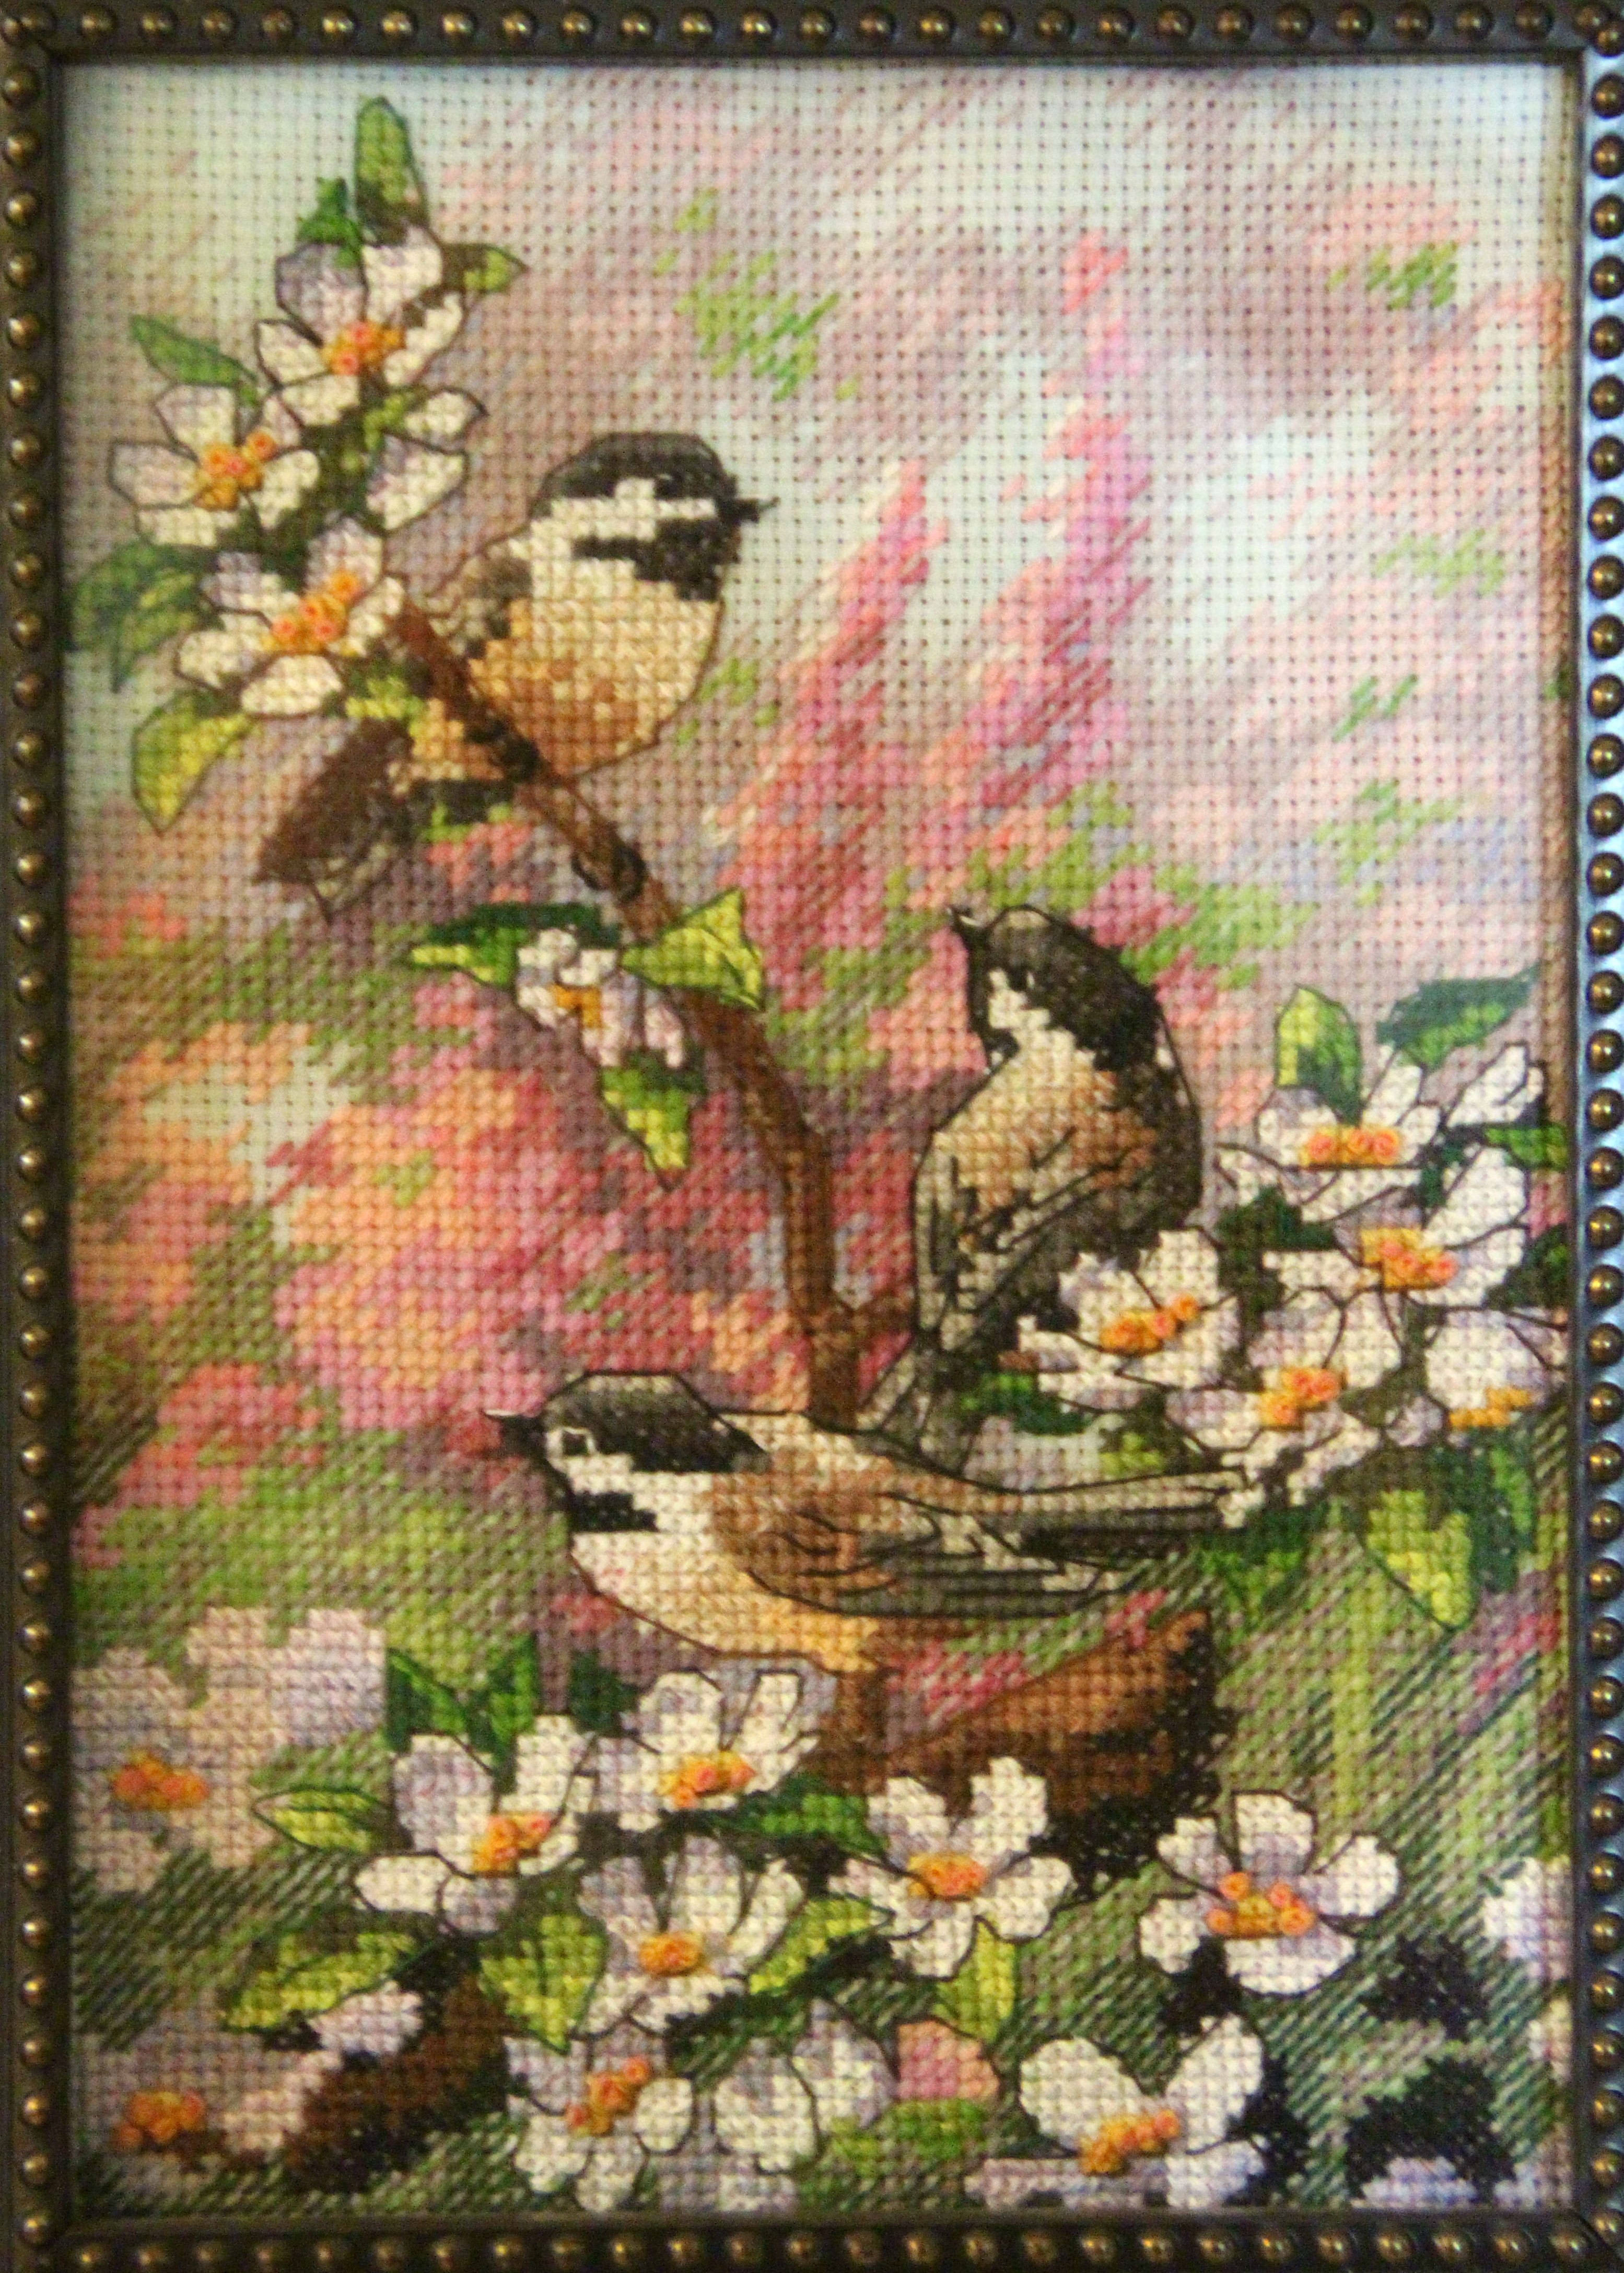 Chickadees in the Spring by aboredlifeisboring